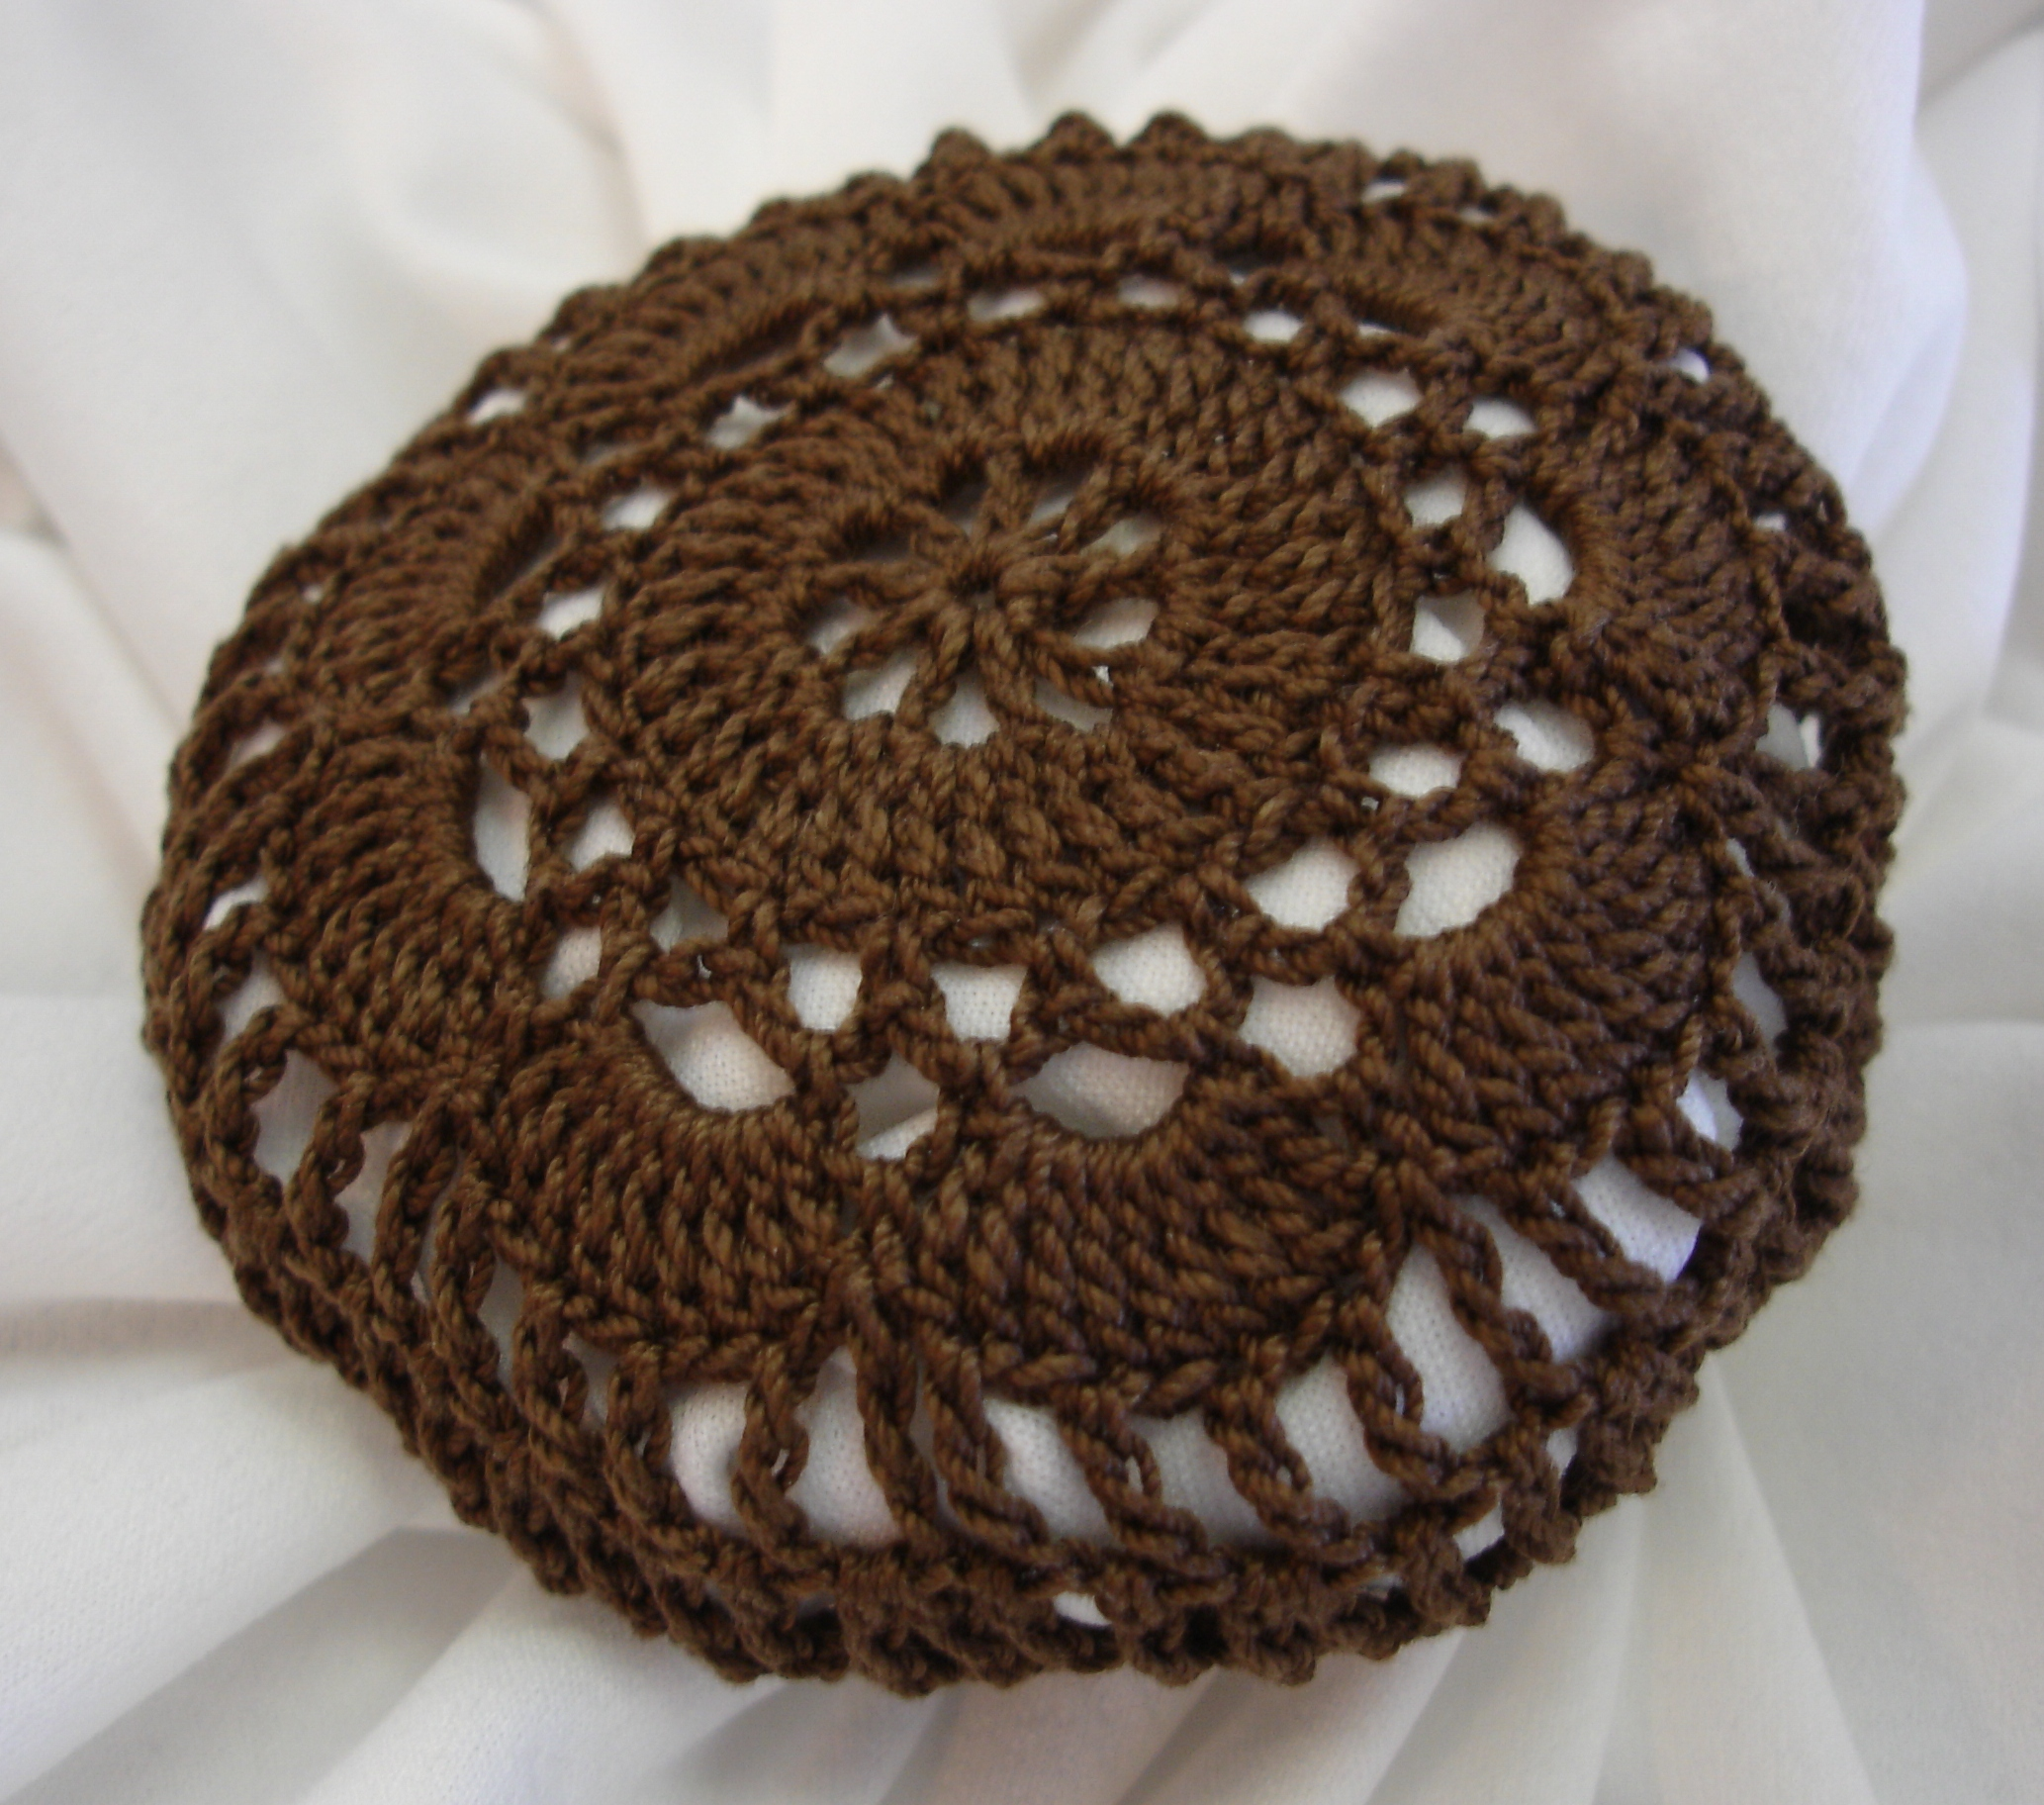 Set of 3 Crocheted Hair Net / Bun Covers Flower Style merrydeals4u